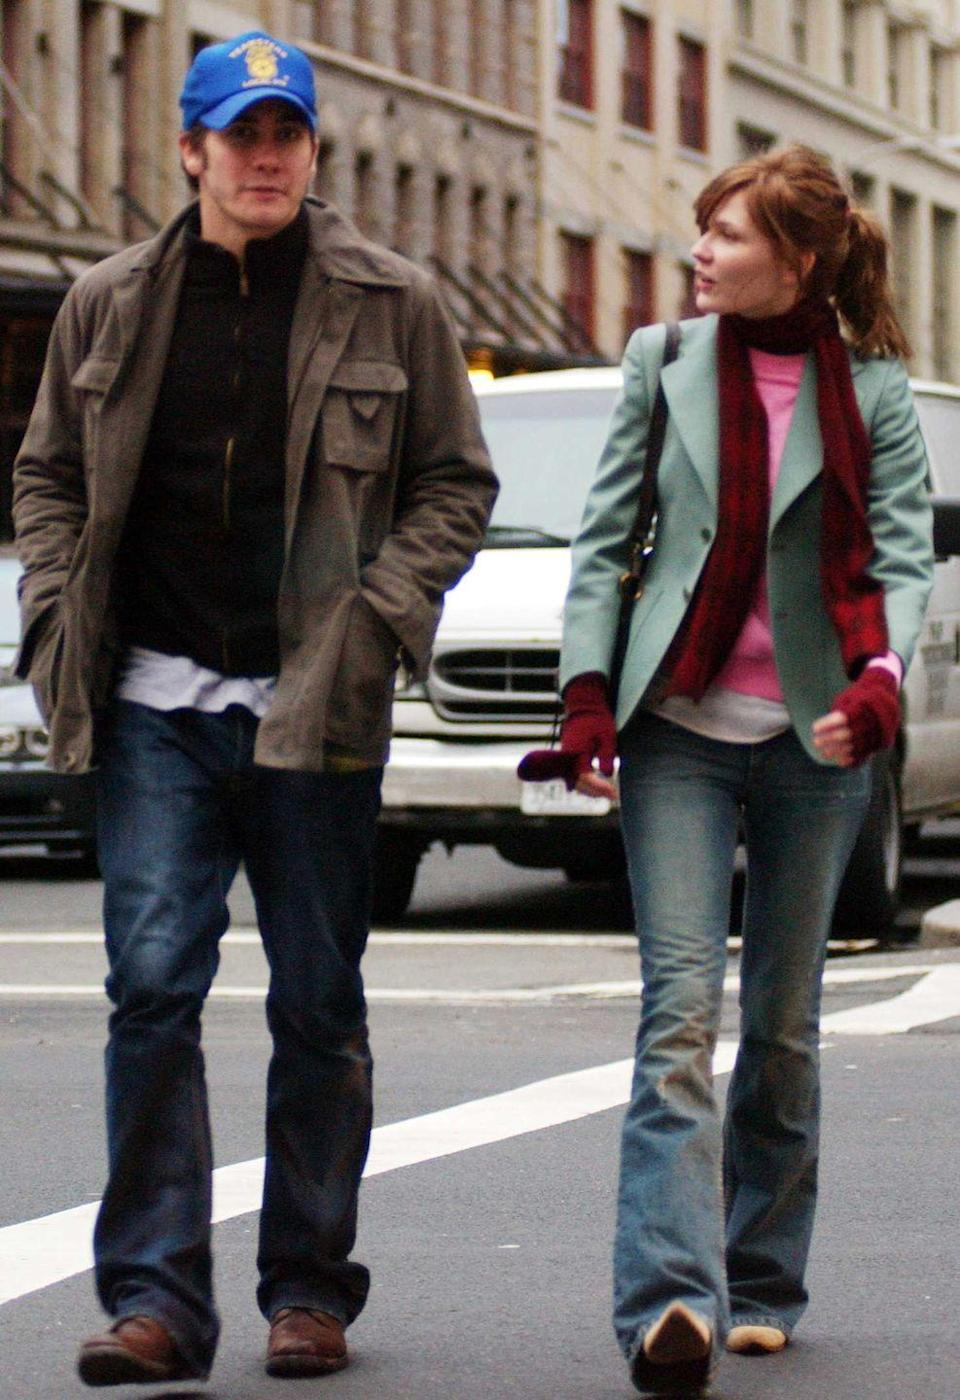 <p>Jake Gyllenhaal and Kirsten Dunst's two-year romance gifted pop culture with several moments. This autumn outing featuring Dunst's on-trend skinny scarf is 100 percent one of them.</p>